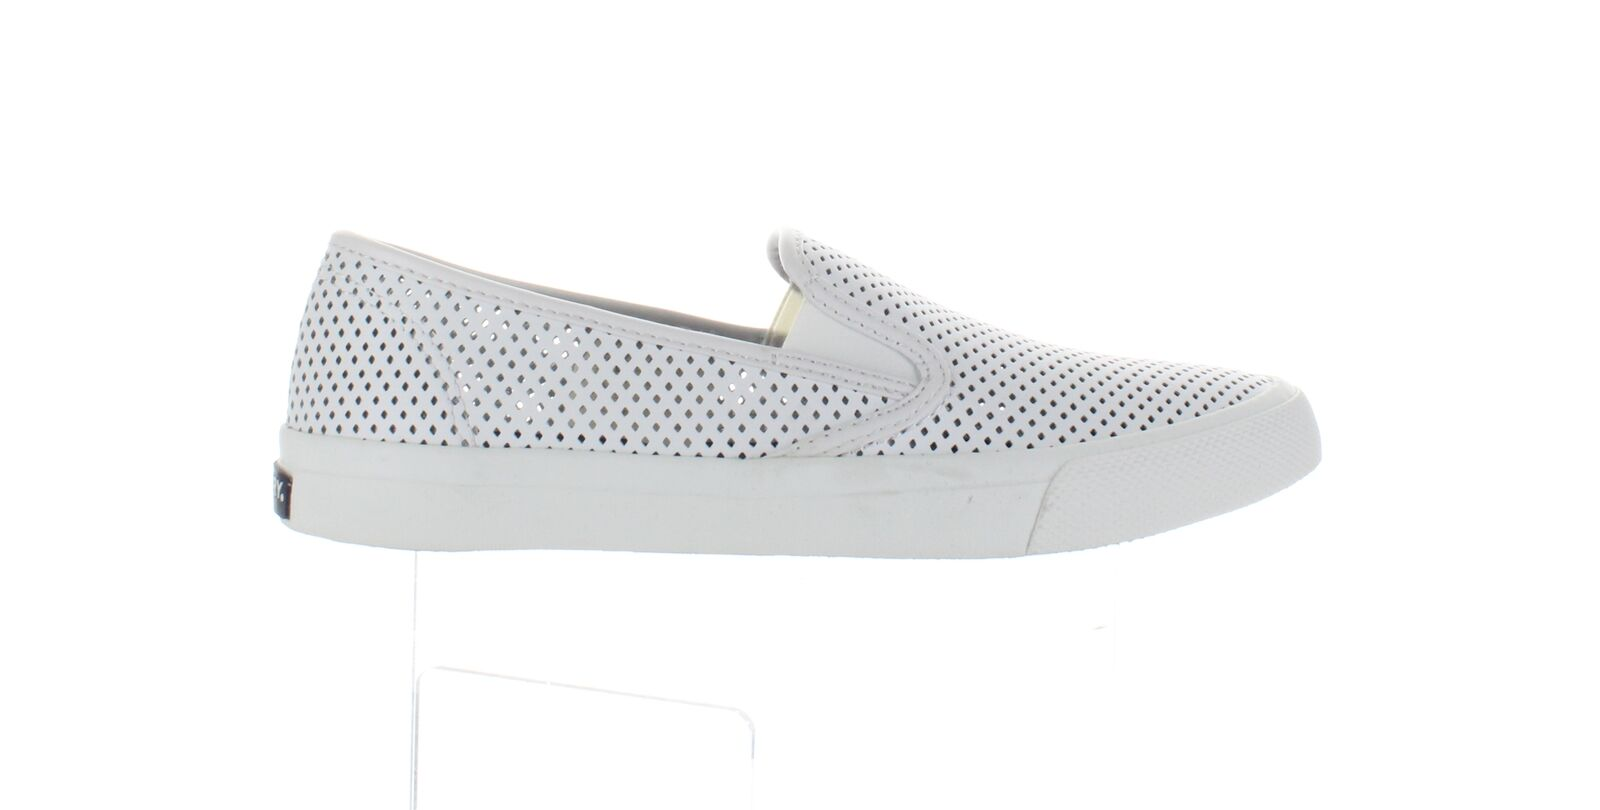 Sperry Top Sider Womens Seaside Perf White Size 8.5 (1963321)